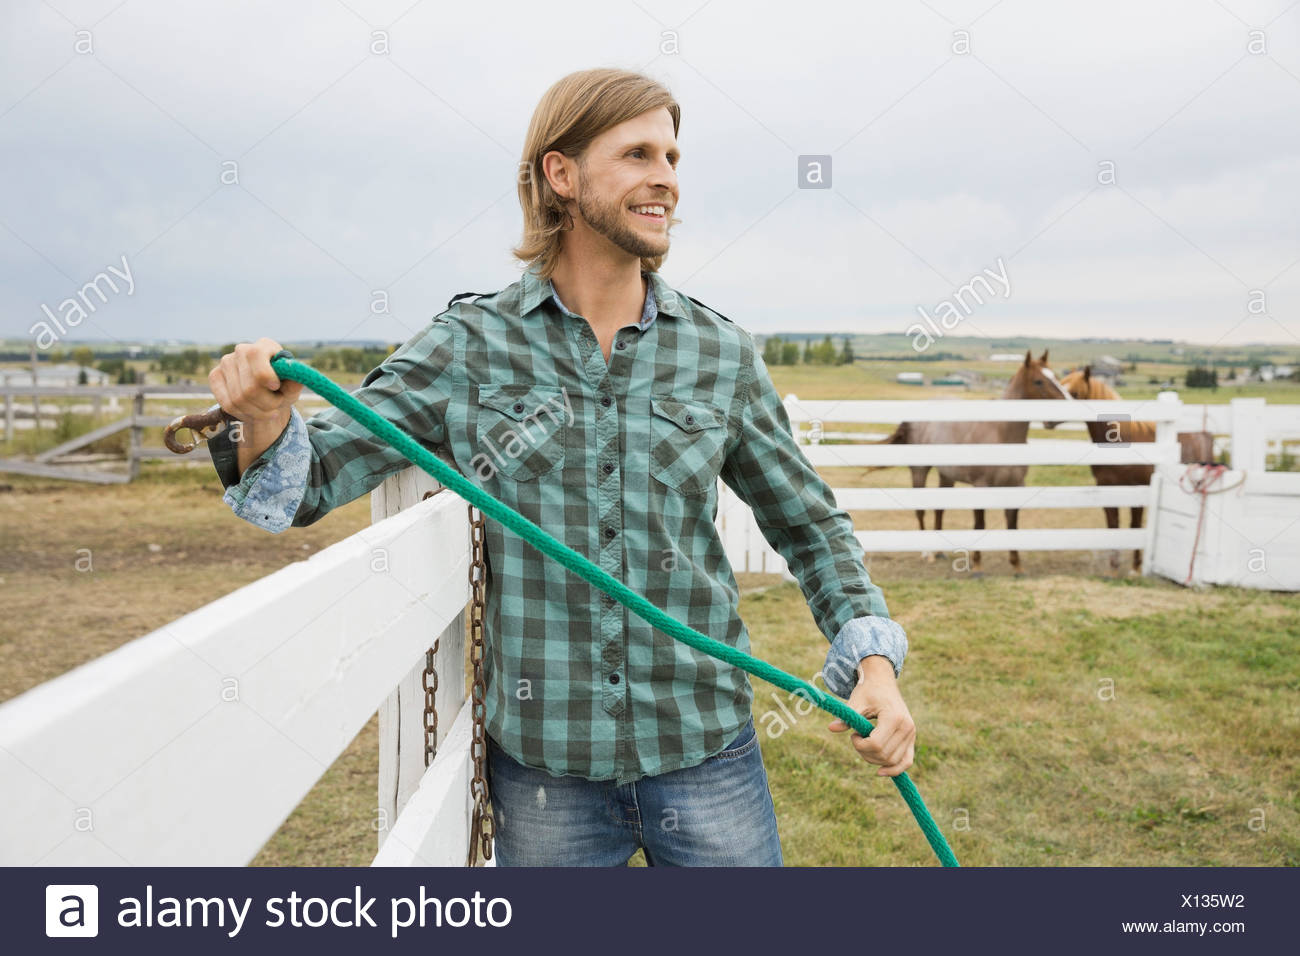 Man holding rope working on ranch - Stock Image